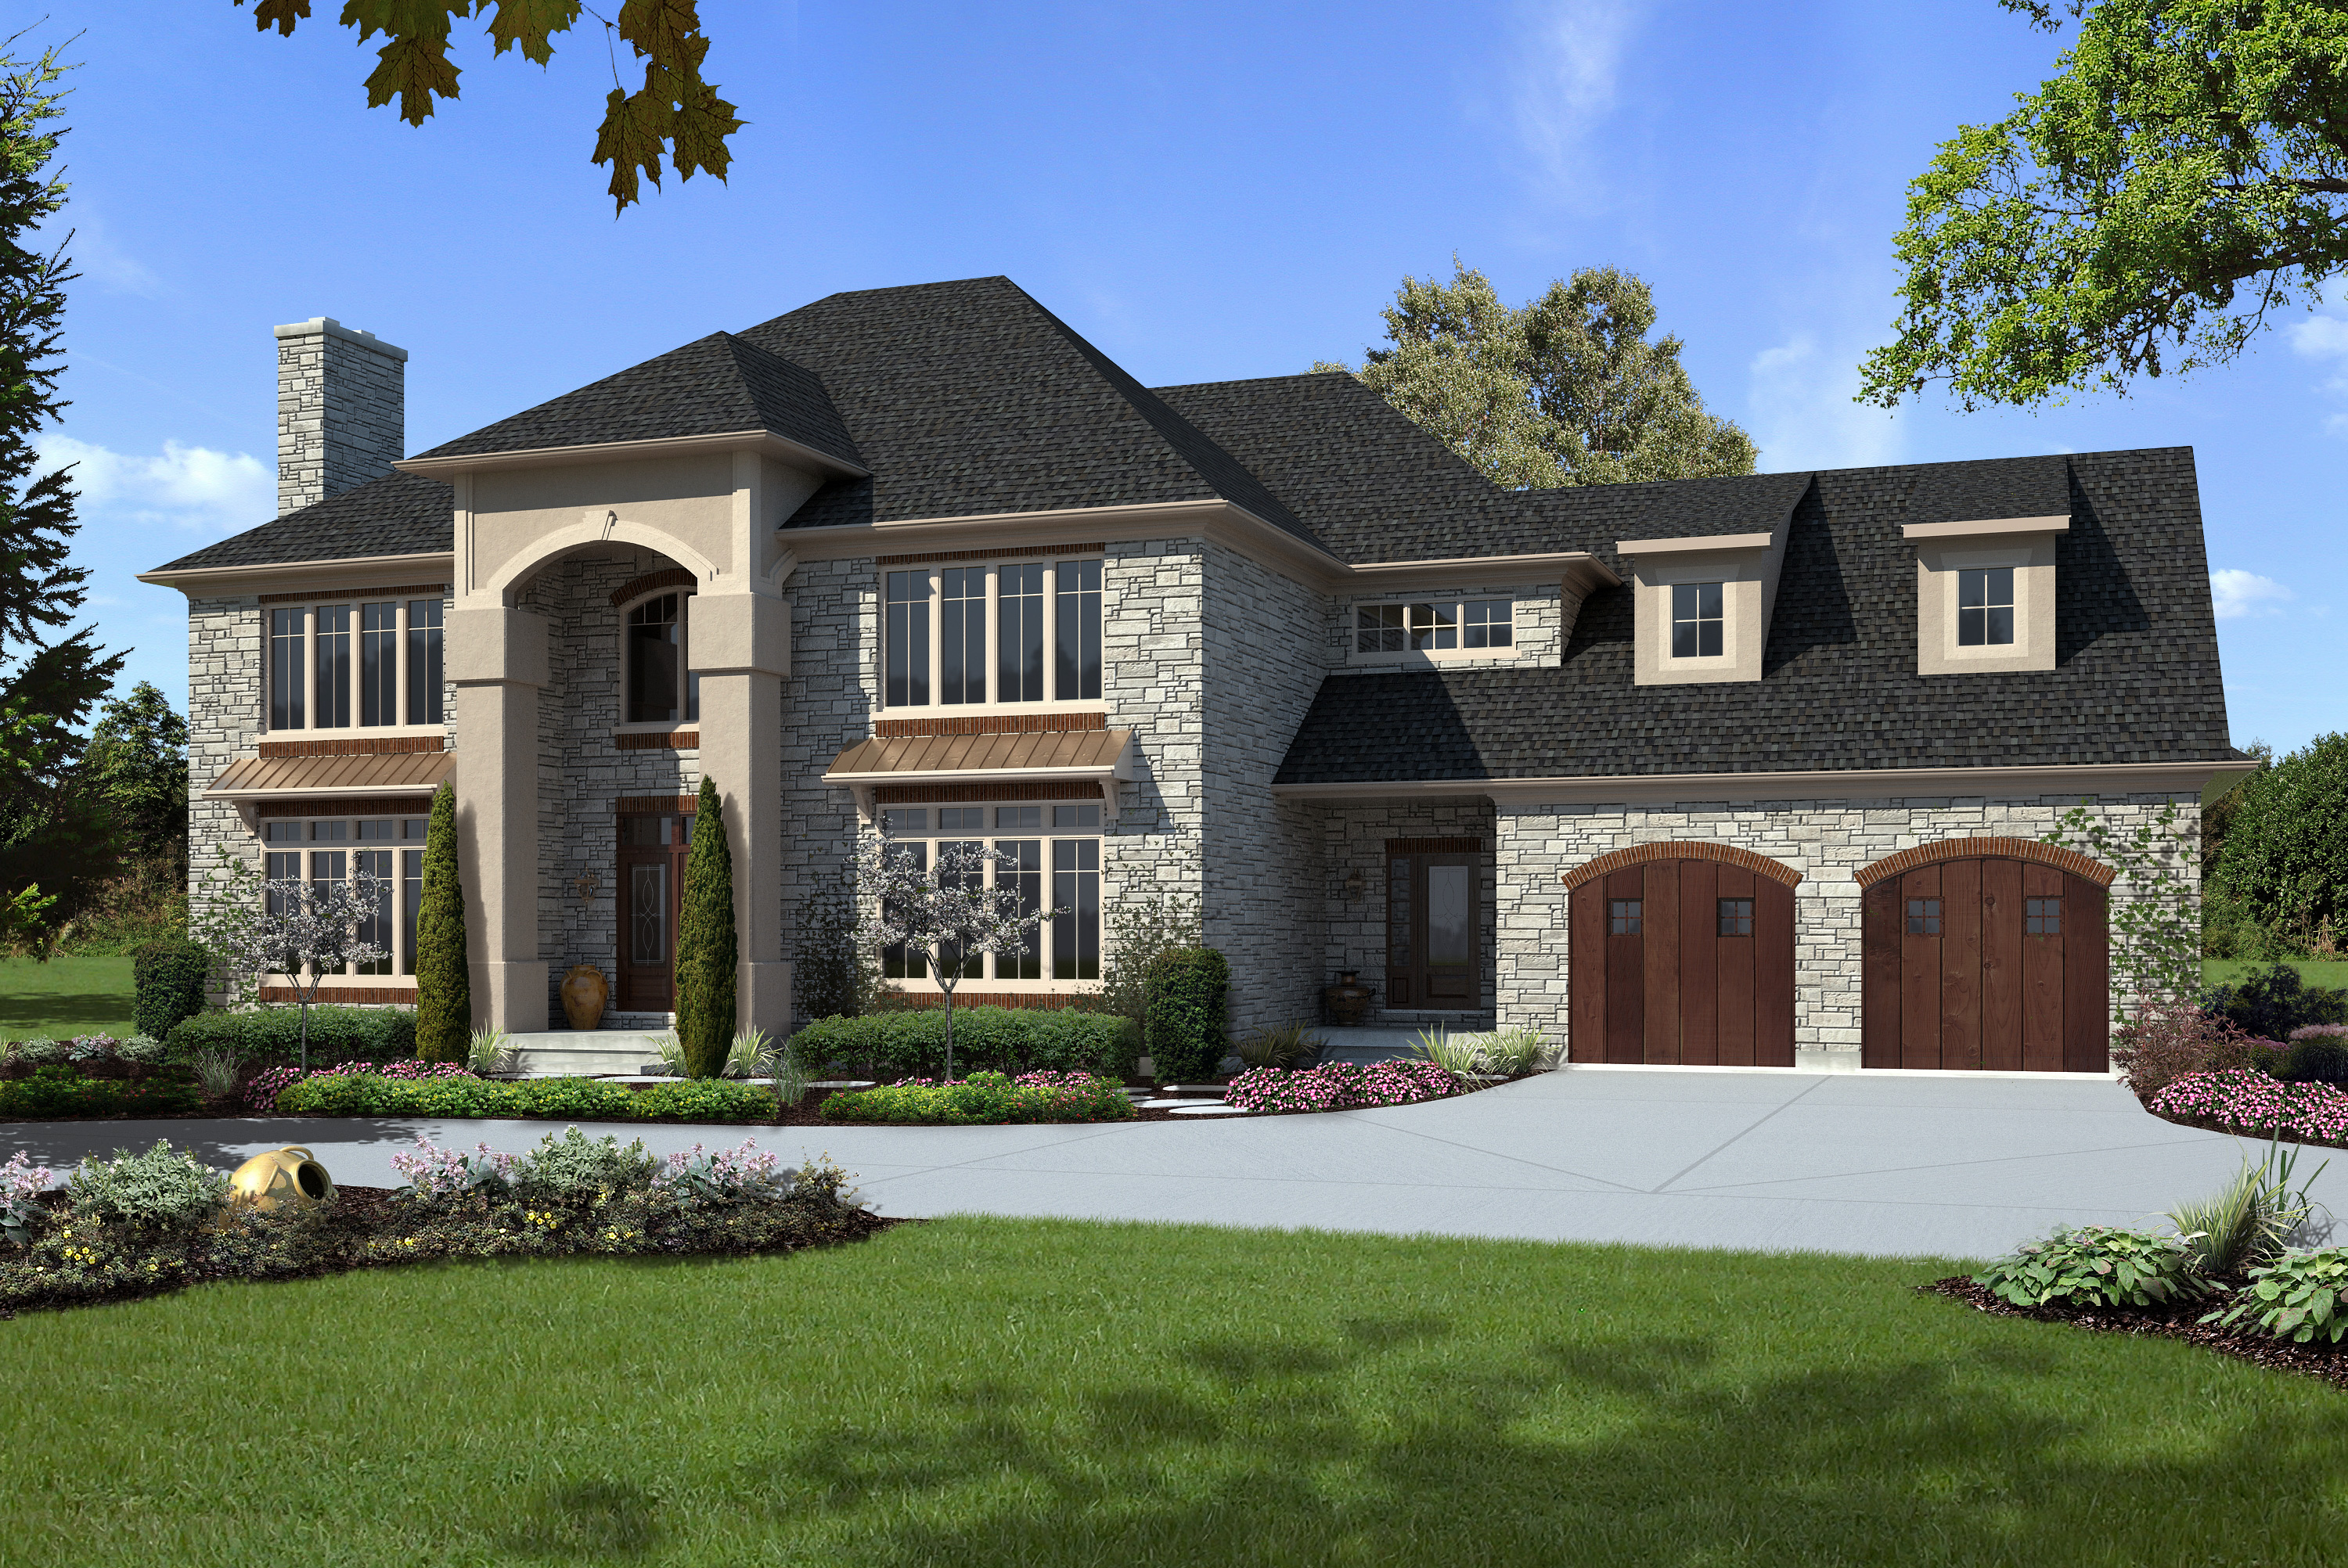 Custom home designs custom house plans custom home plans Custom home blueprints